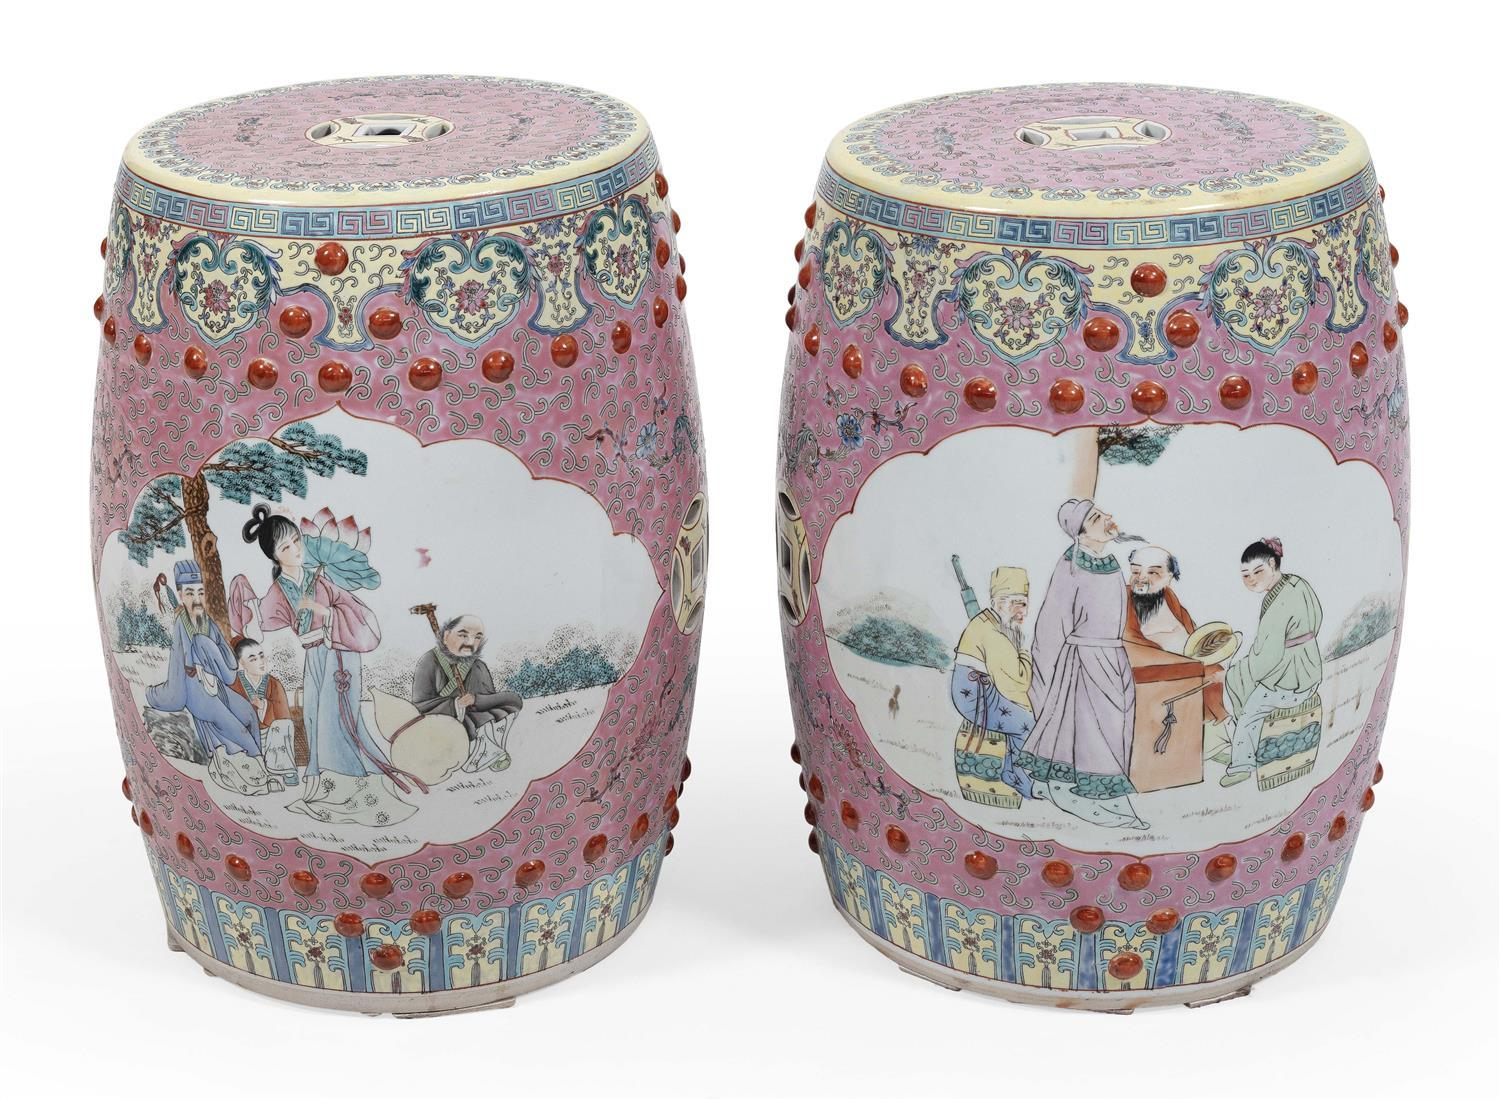 PAIR OF CHINESE FAMILLE ROSE PORCELAIN GARDEN SEATS Two figural cartouches on a vine-filled pink ground with raised bosses and famil...